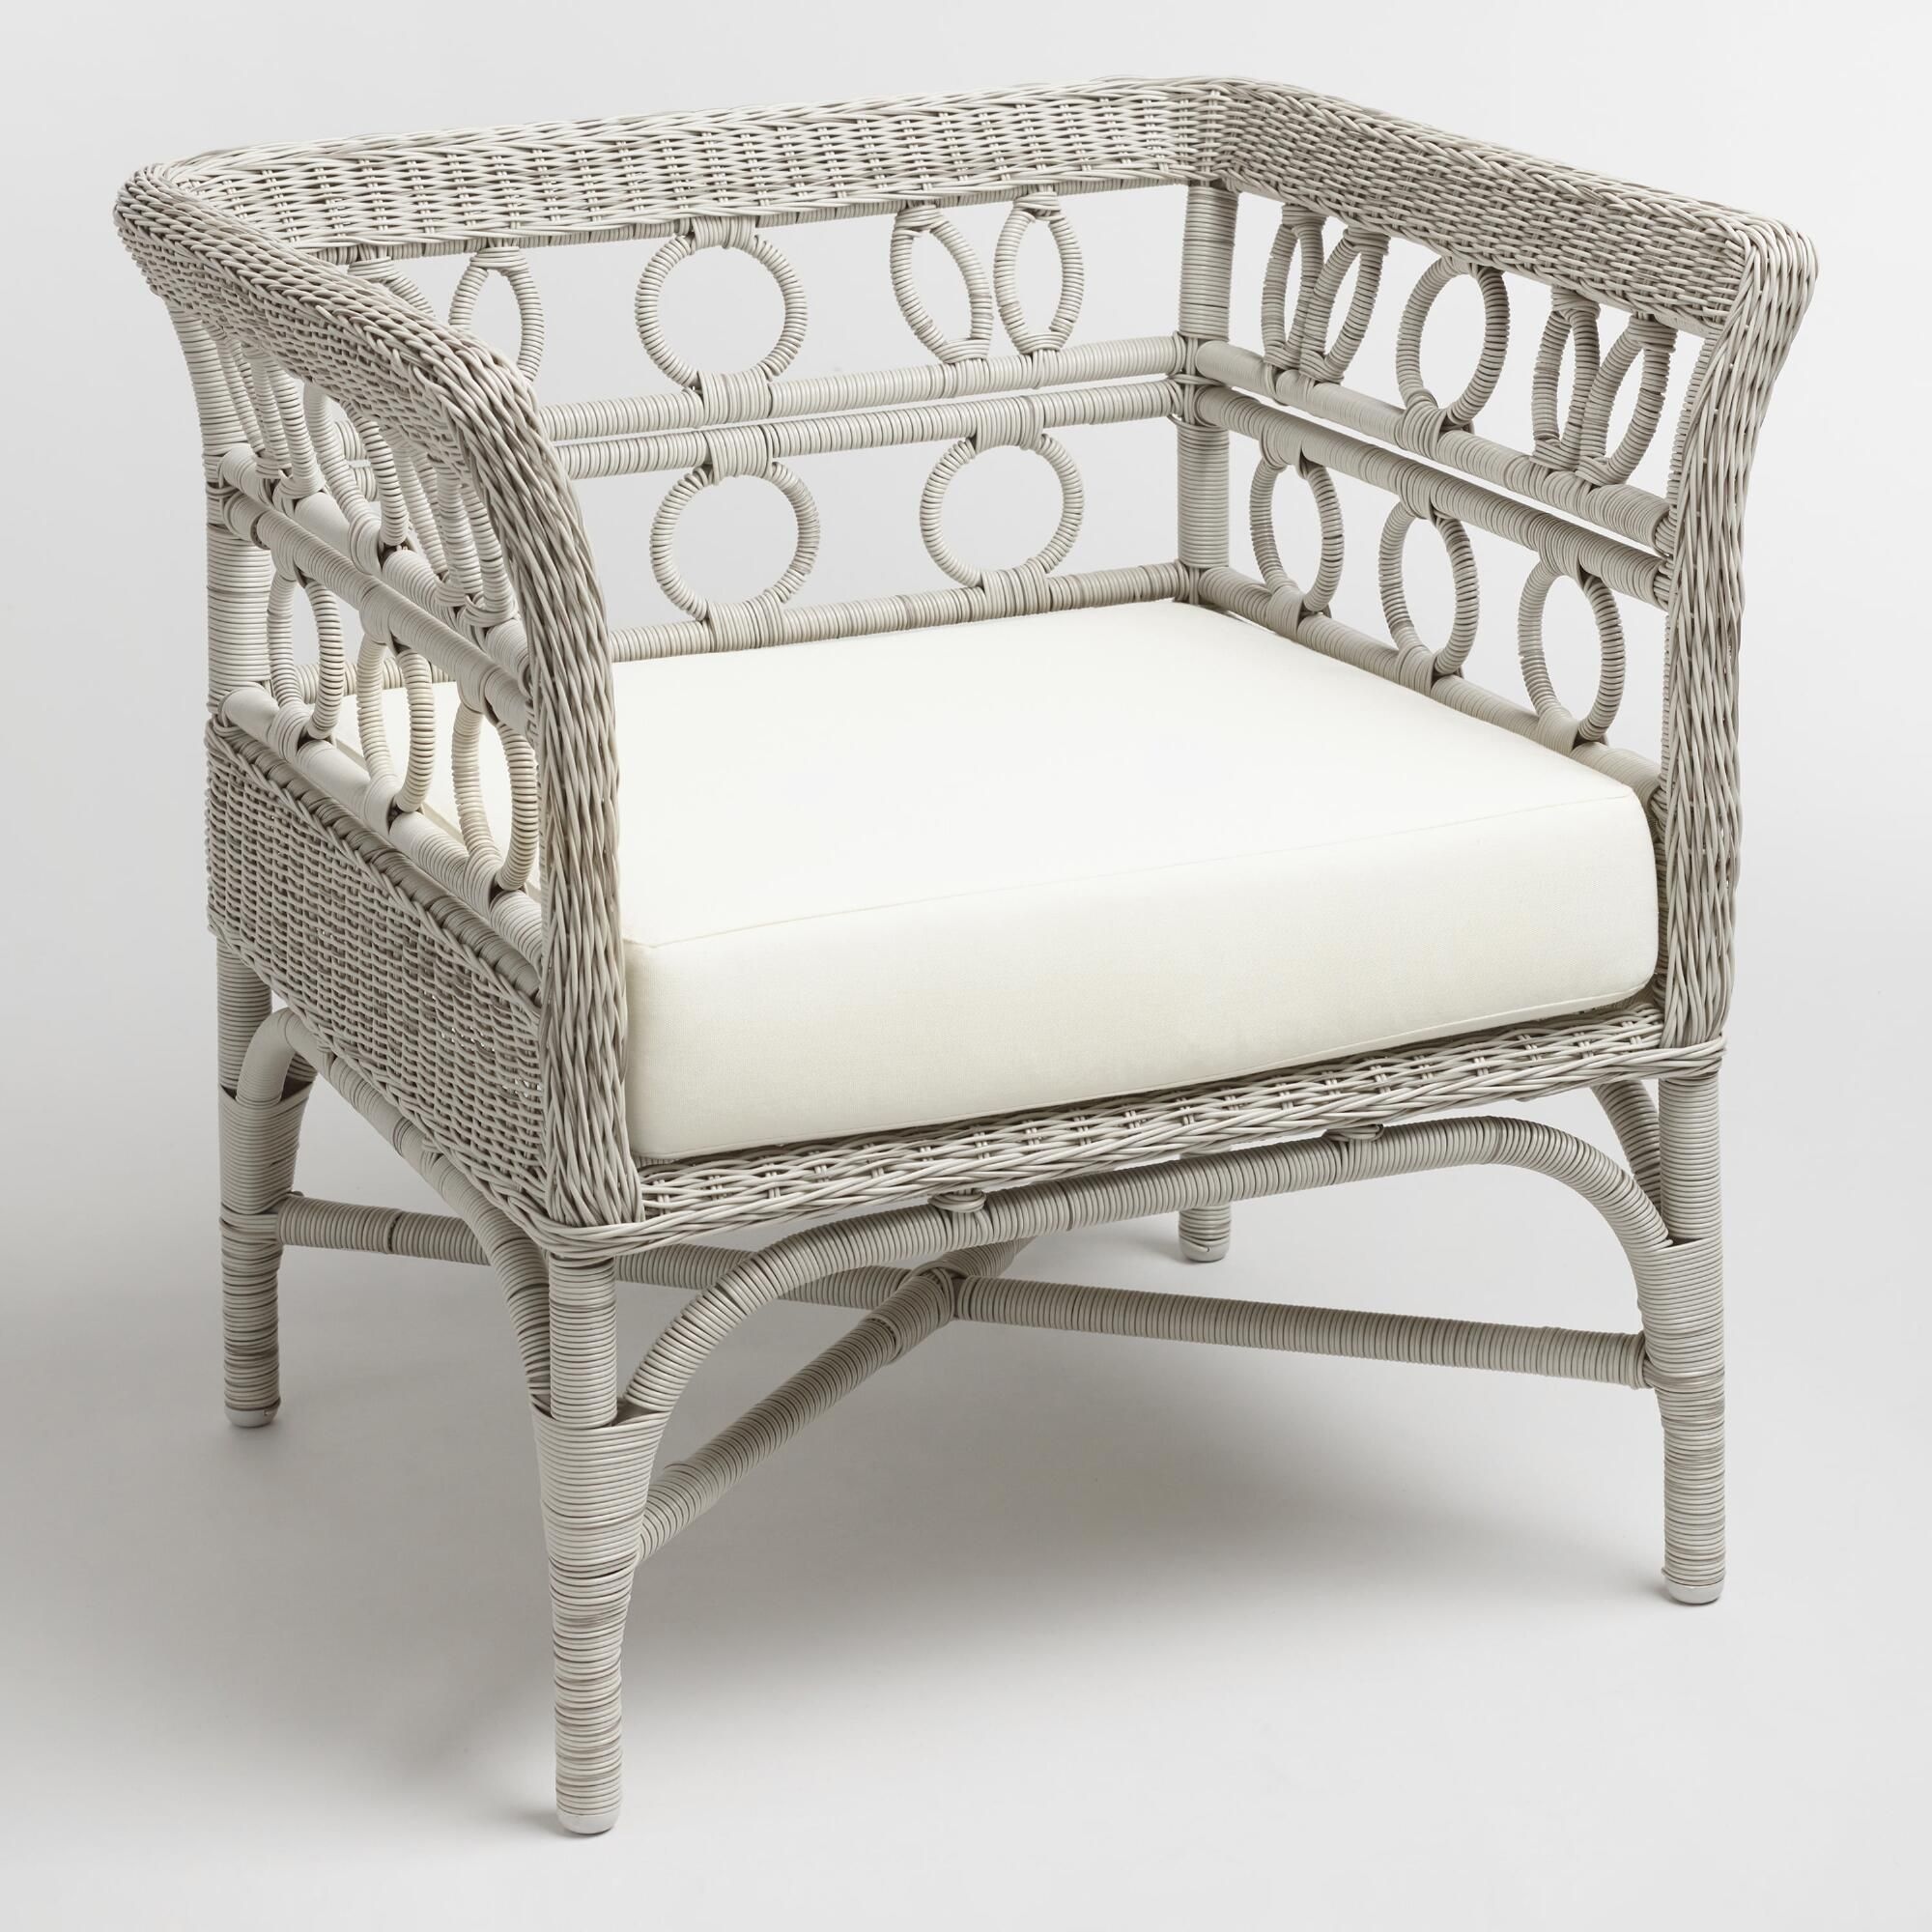 Brimming with quality craftsmanship our outdoor chair